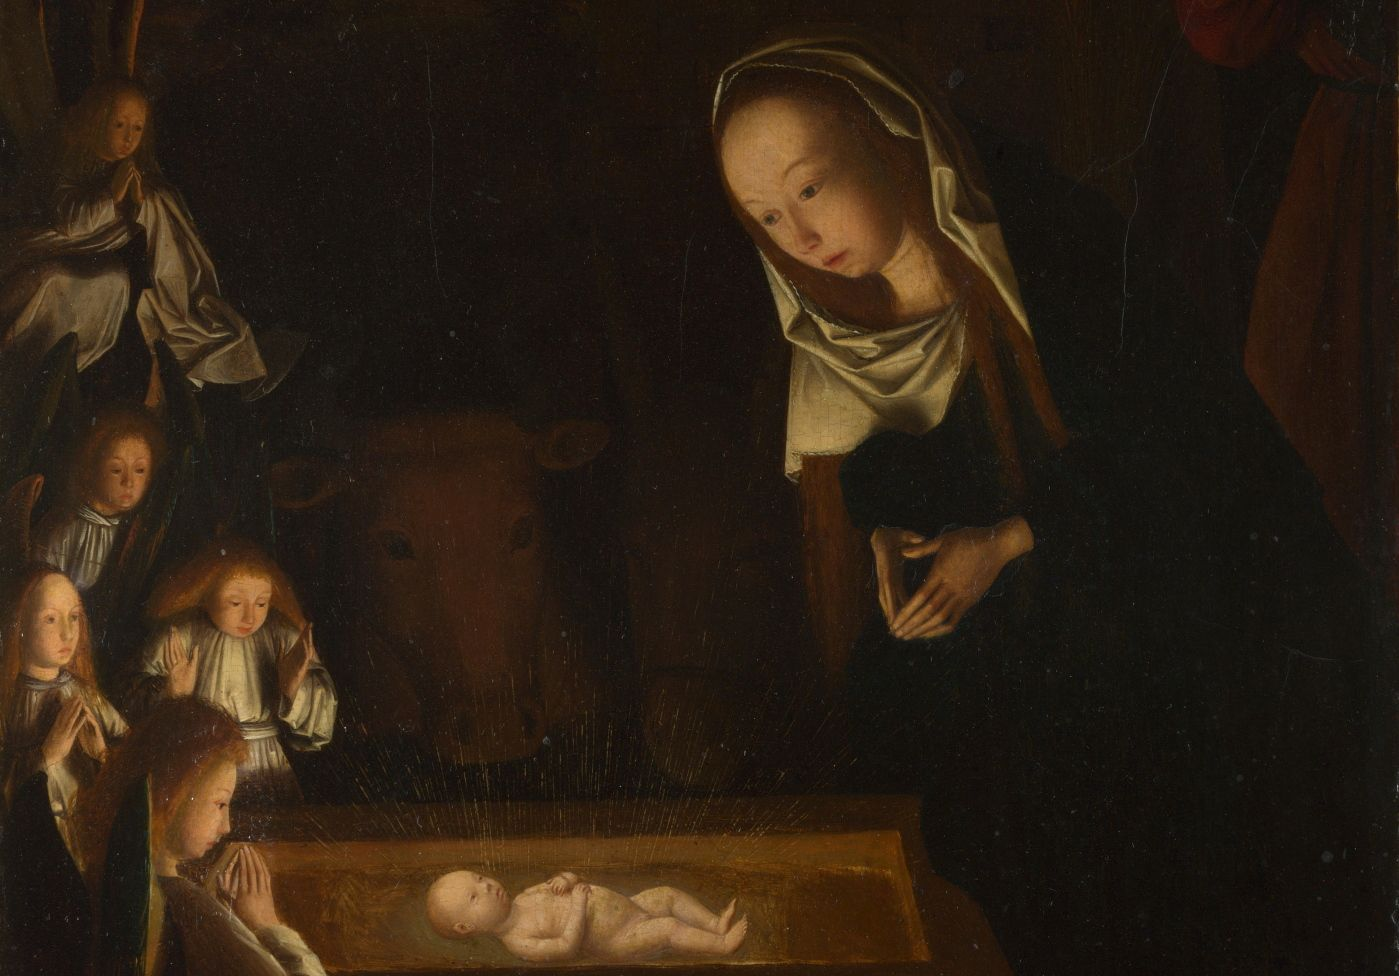 FOTO: GEERTGEN TOT SINT JANS SITT NATIVITY AT NIGHT FRA 1490 (WIKIMEDIA COMMONS/THE NATIONAL GALLERY)